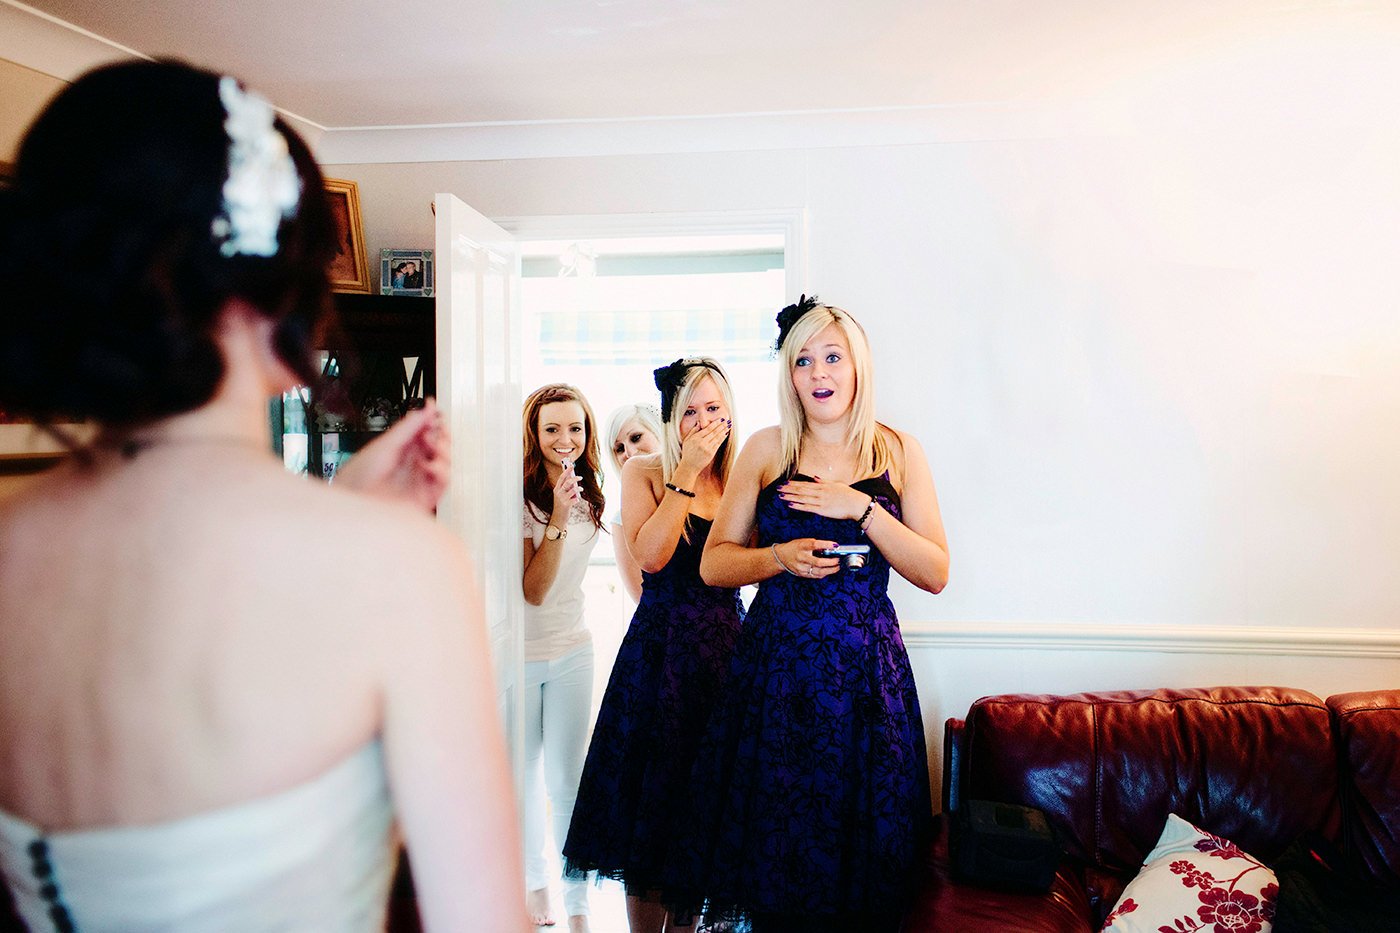 Beautiful moment with bride and bridesmaids